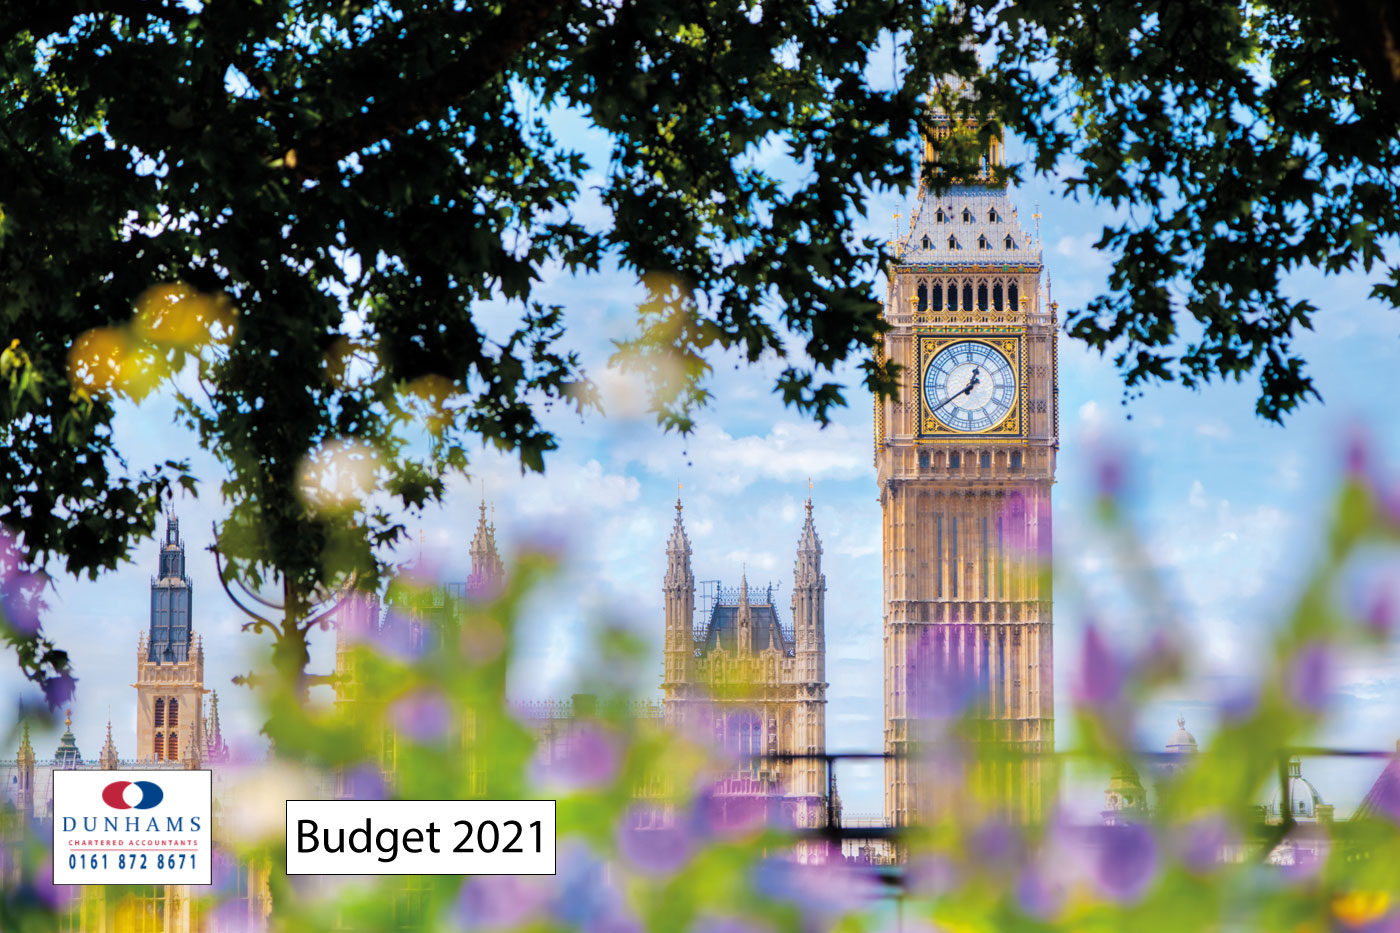 Dunhams Budget Review 2021 - Introduction Overview.